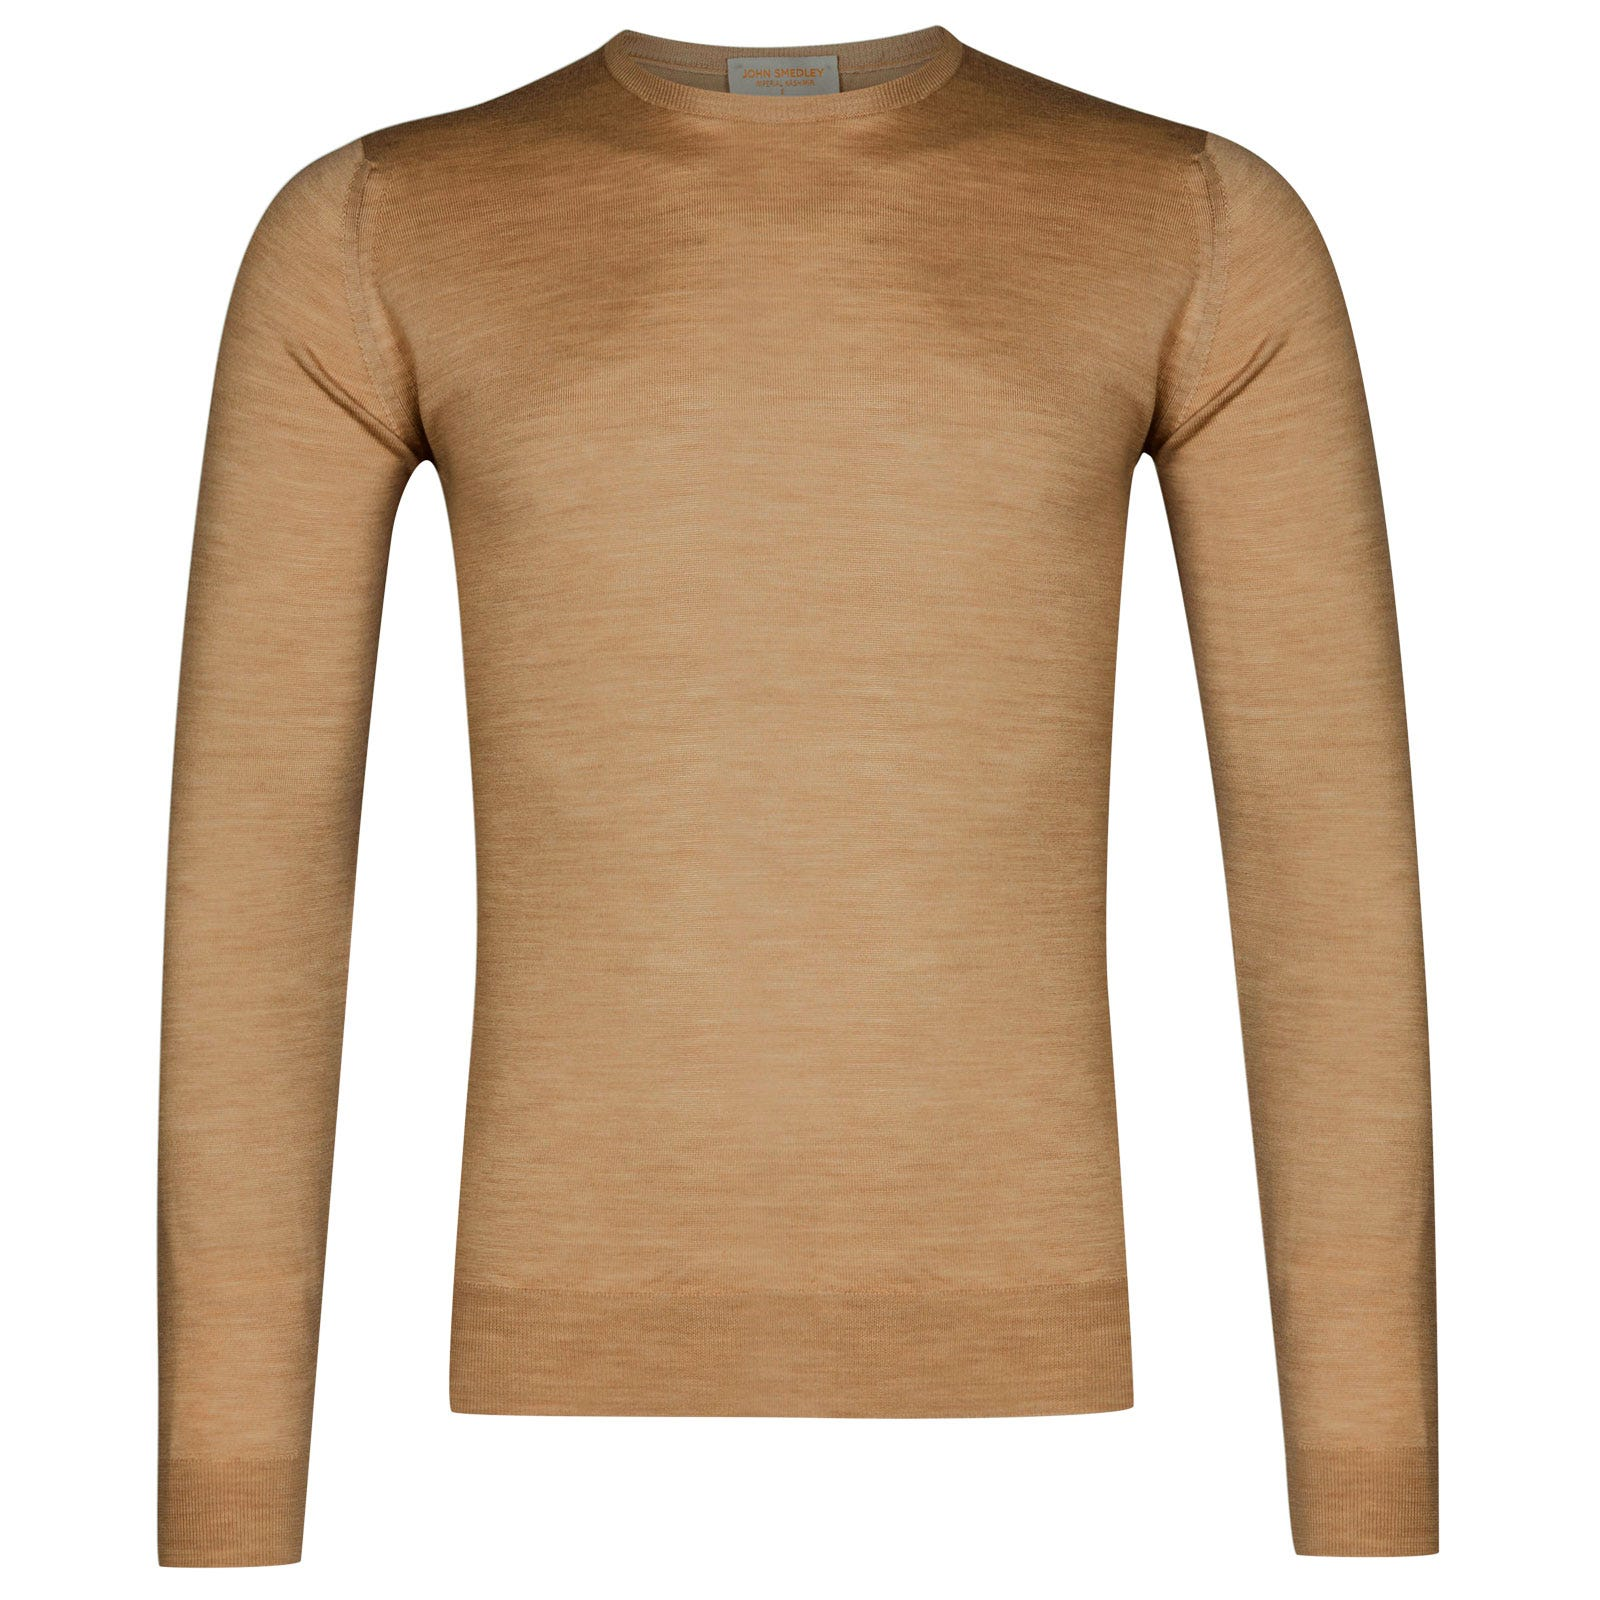 John Smedley sherman Merino Wool and Cashmere Pullover in Dark